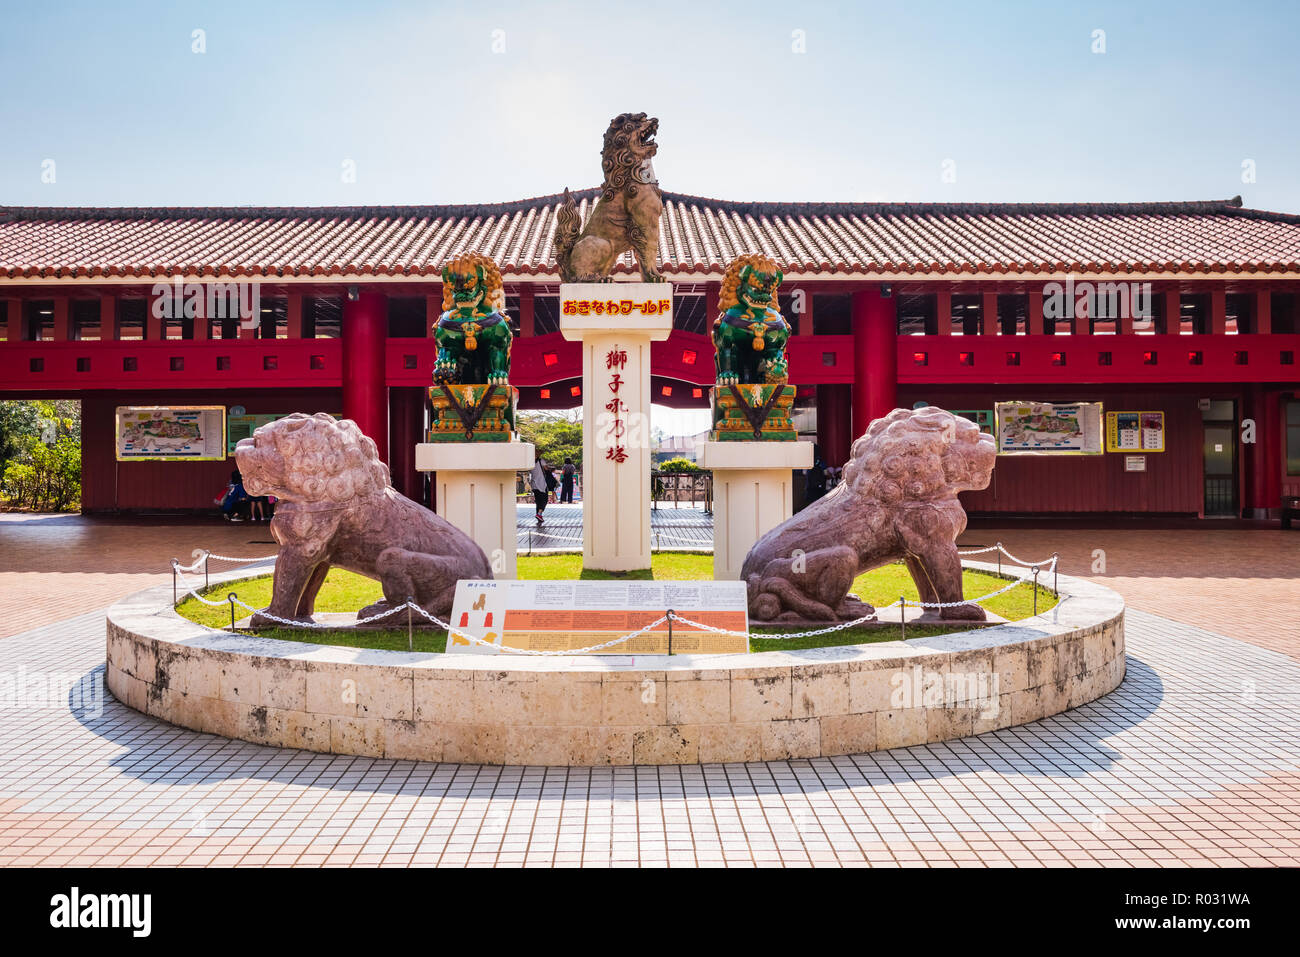 Okinawa / Japan - October 9, 2018: Okinawa World is a theme park focusing on Okinawan culture. It features Gyokusendo Cave, a craft village, and cultu Stock Photo